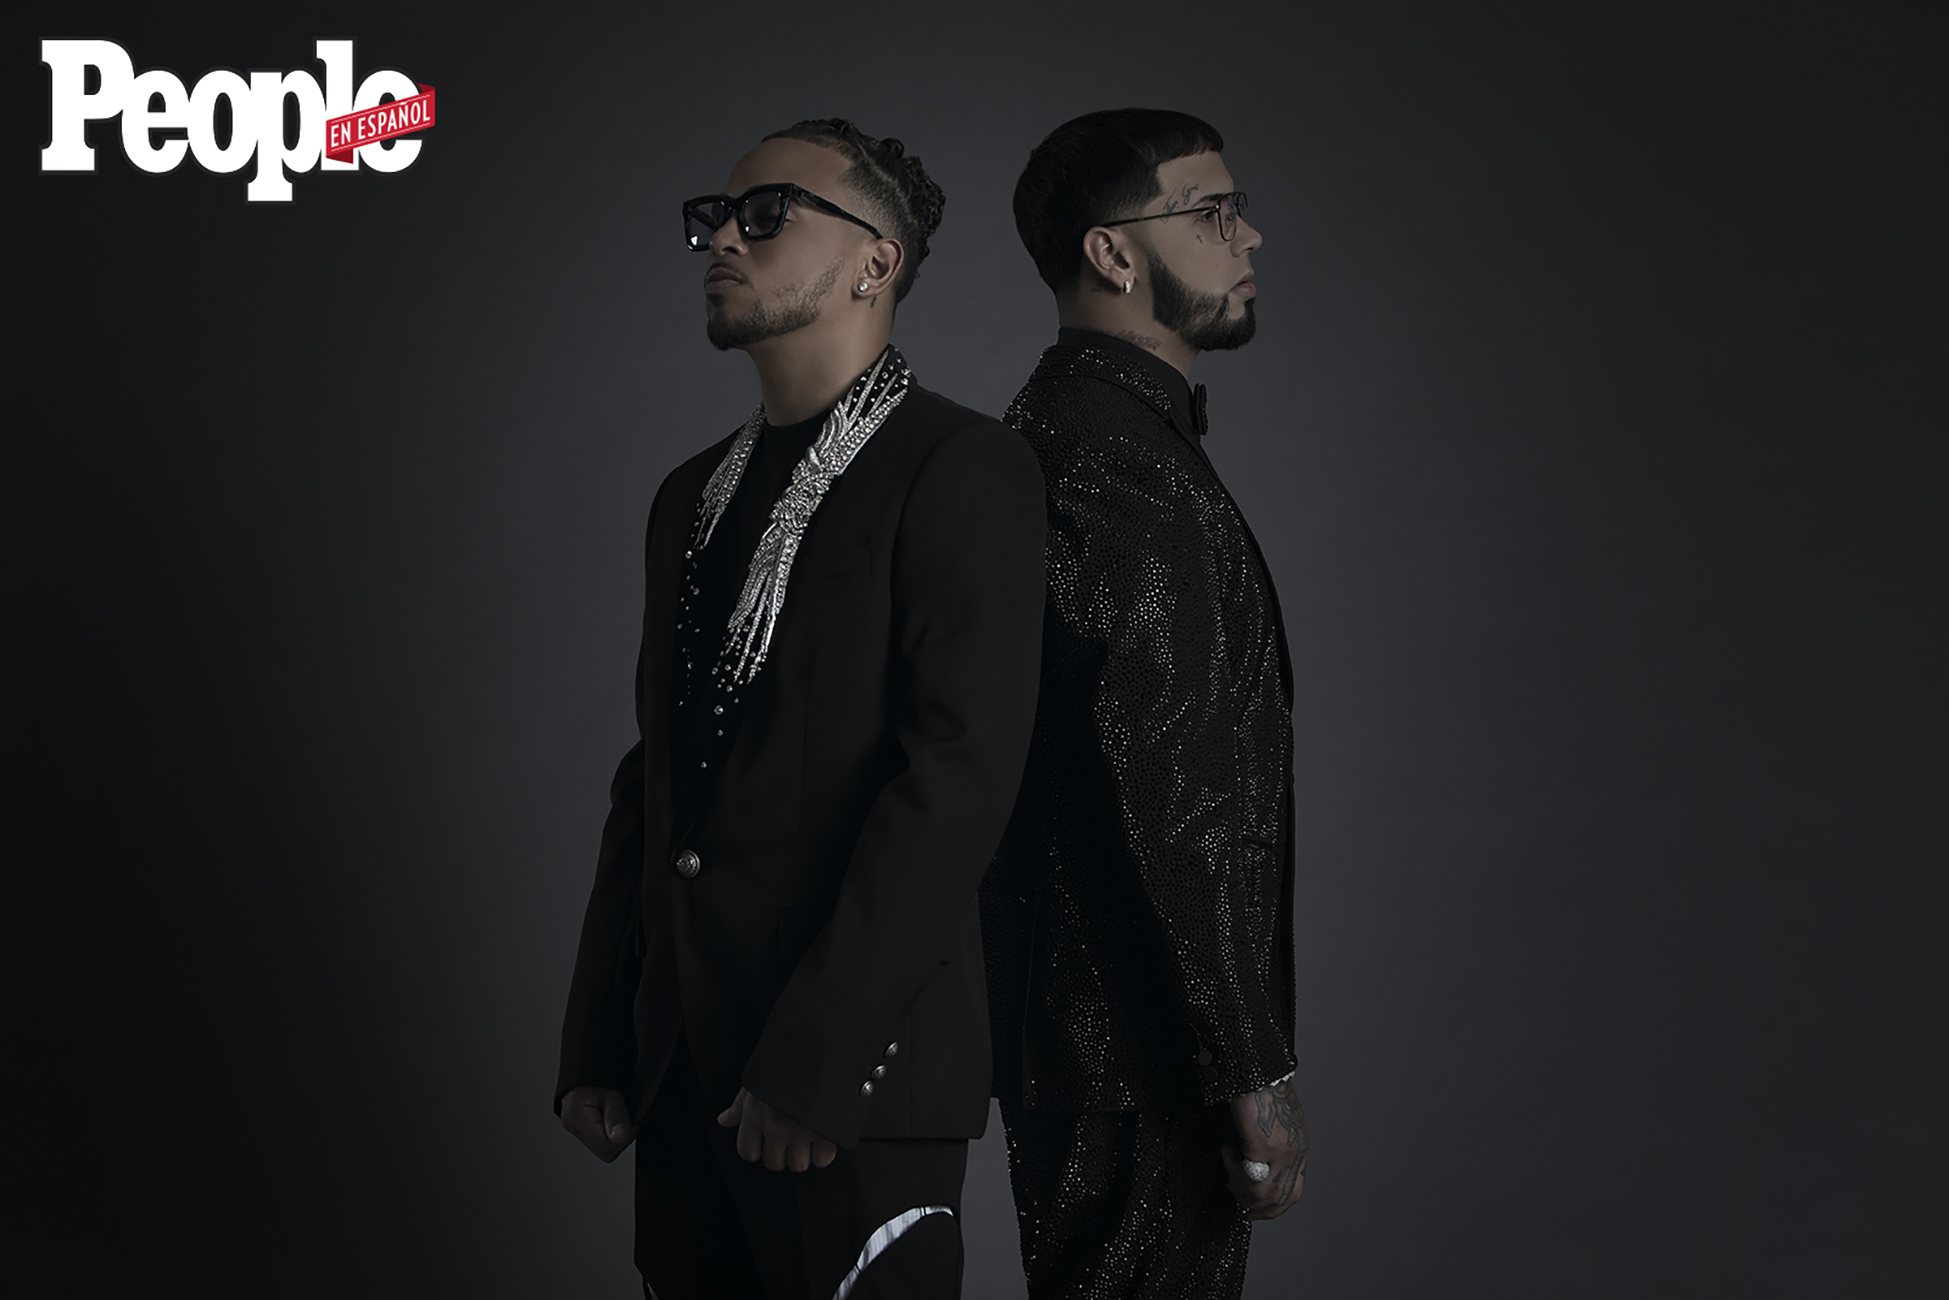 Ozuna y Anuel AA - Digital Cover - DO NOT REUSE